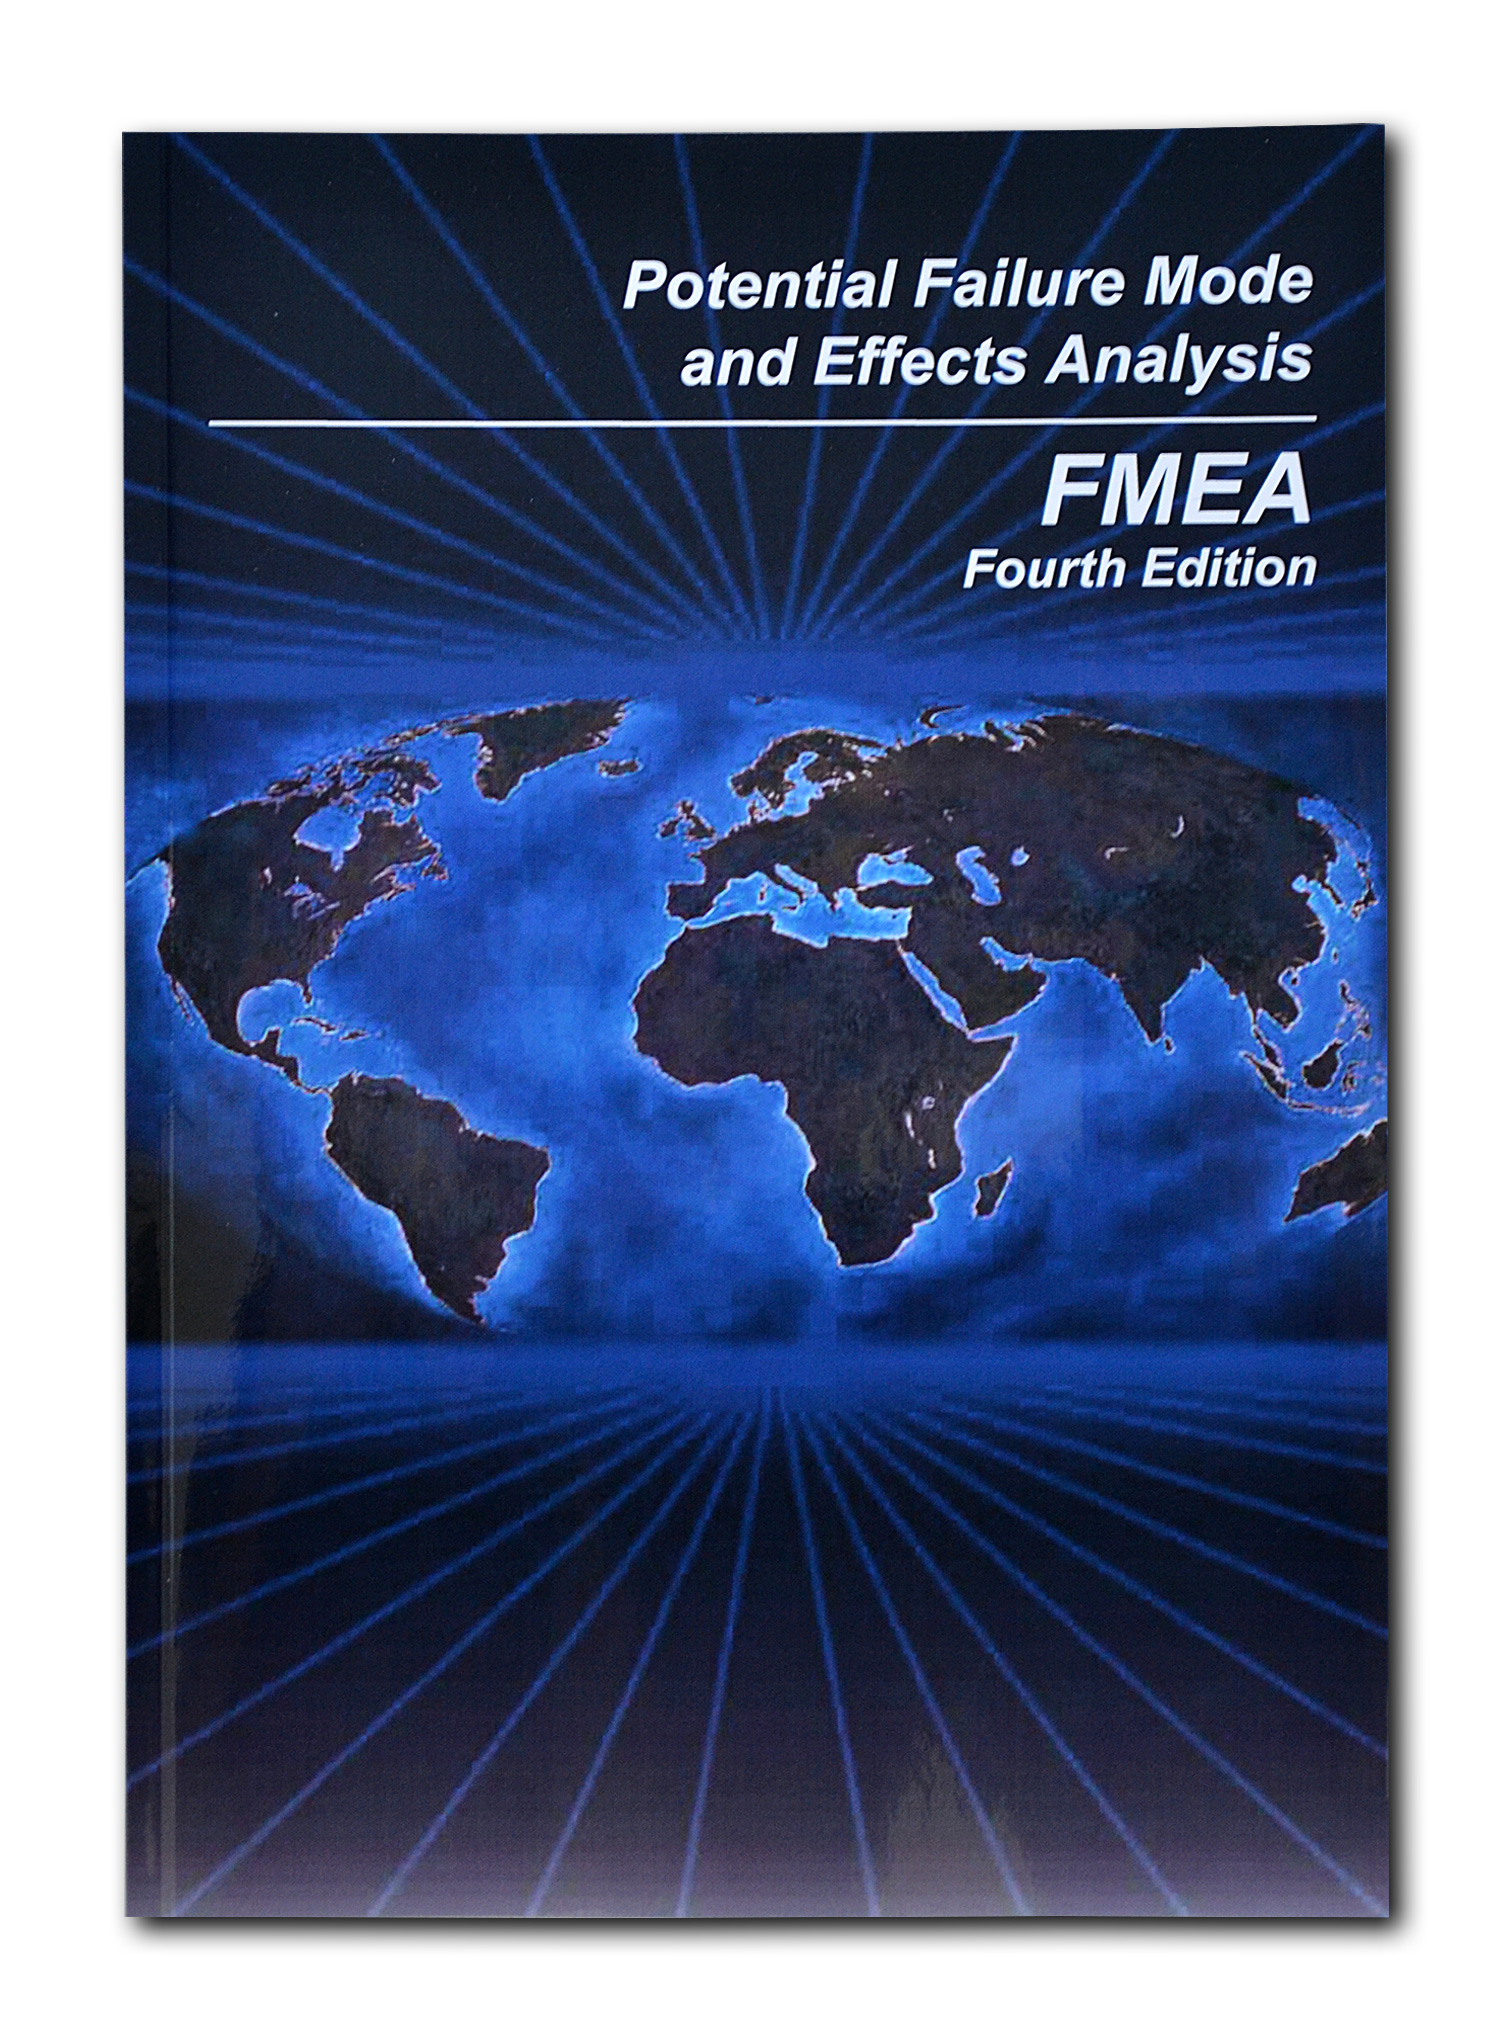 aiag potential failure mode and effects analysis fmea hardcopy rh lmrglobal co uk aiag fmea manual 5th edition pdf aiag fmea manual 4th edition free download